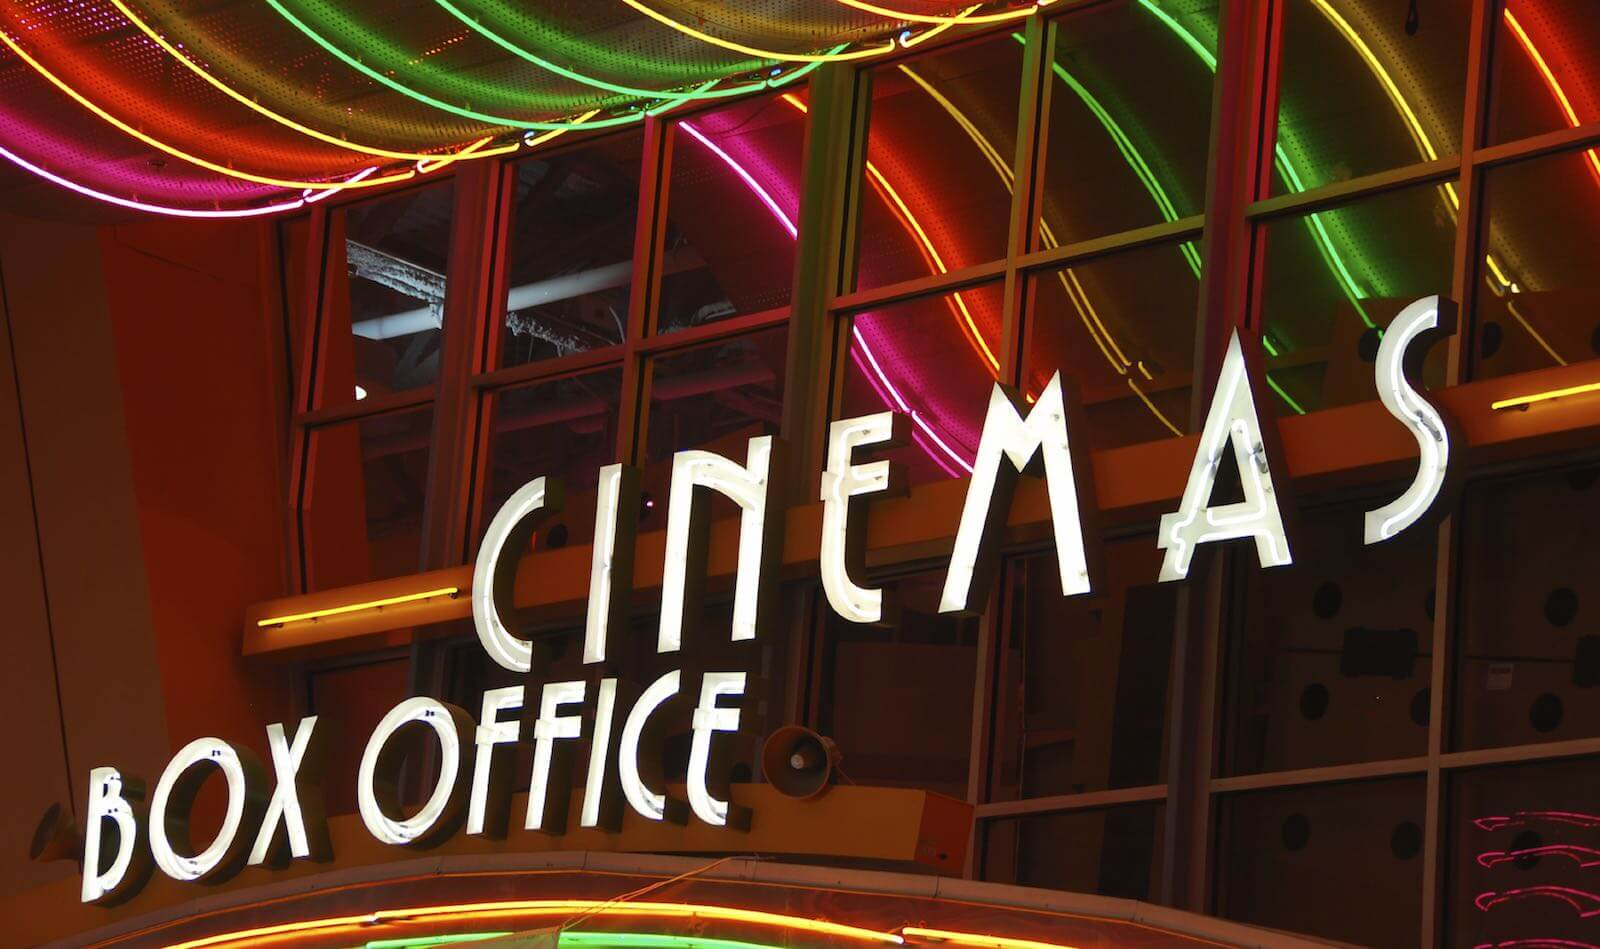 Film Distribution for Film - Box Office Cinemas